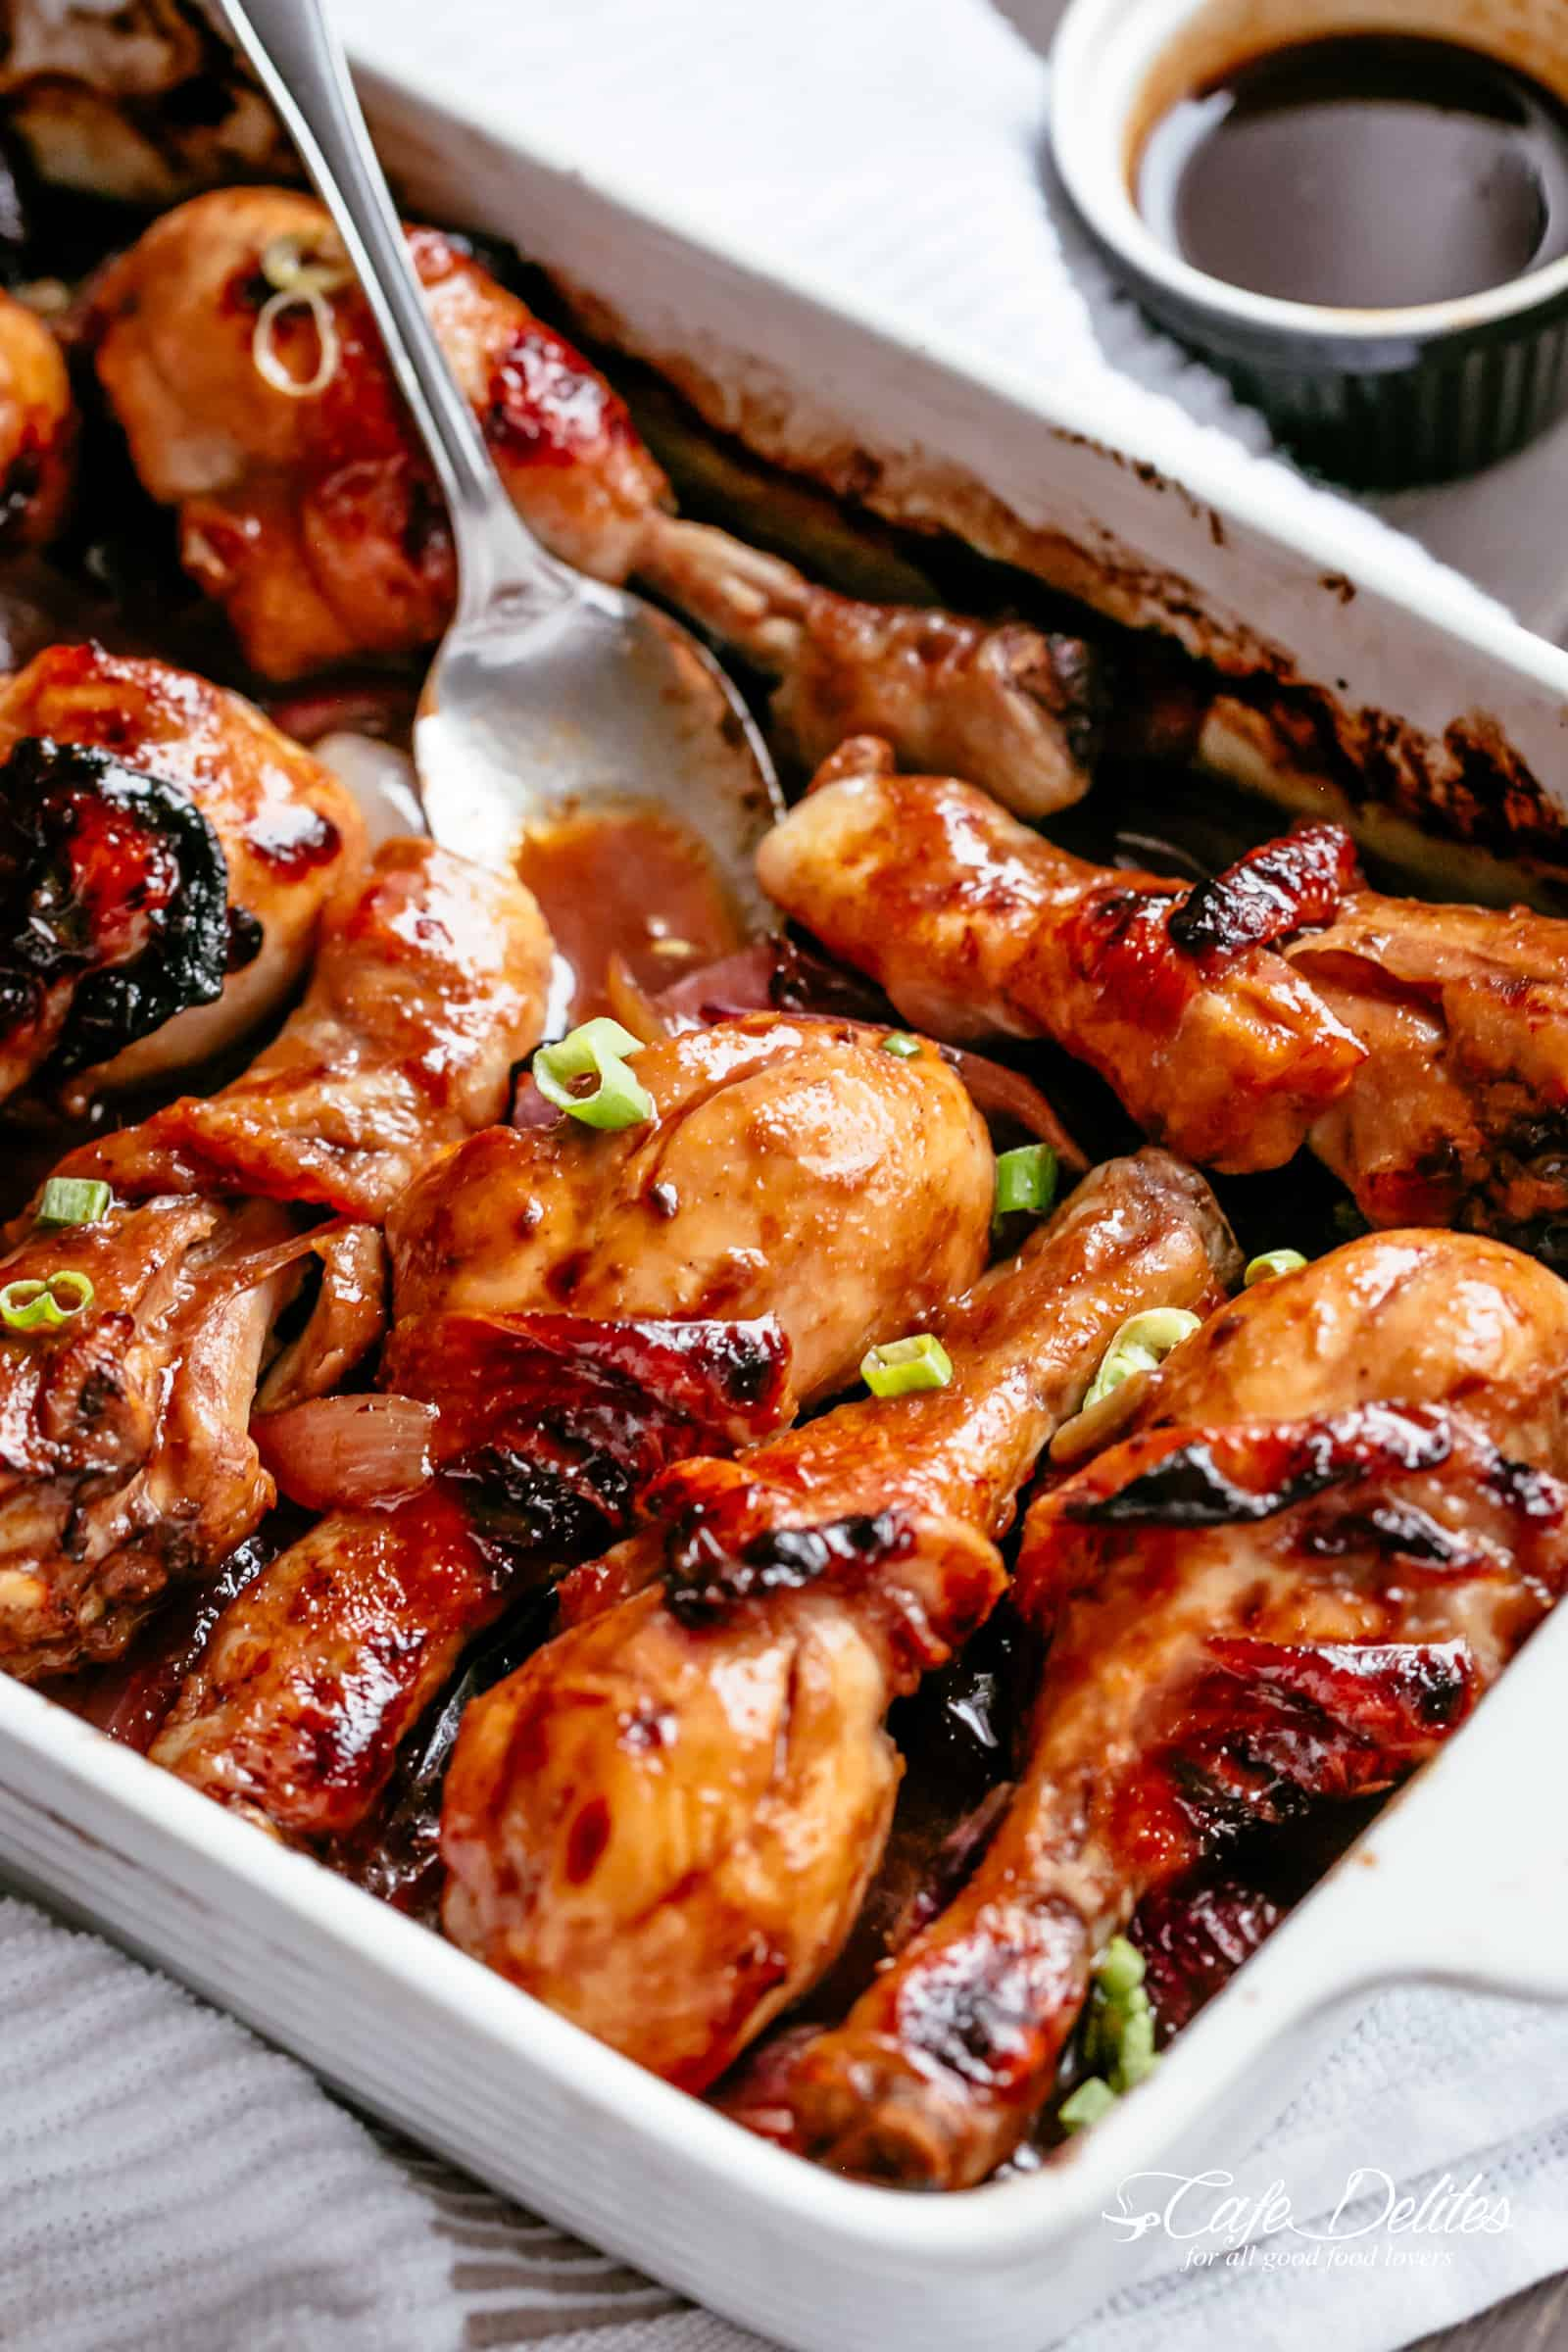 Oven Baked Barbecue Soy Chicken Drumsticks are so quick & simple to make! Baked in a 3 ingredient sauce packed with so much flavour, this chicken is a hit! Ready and on the table in minutes! NO MARINATING | https://cafedelites.com